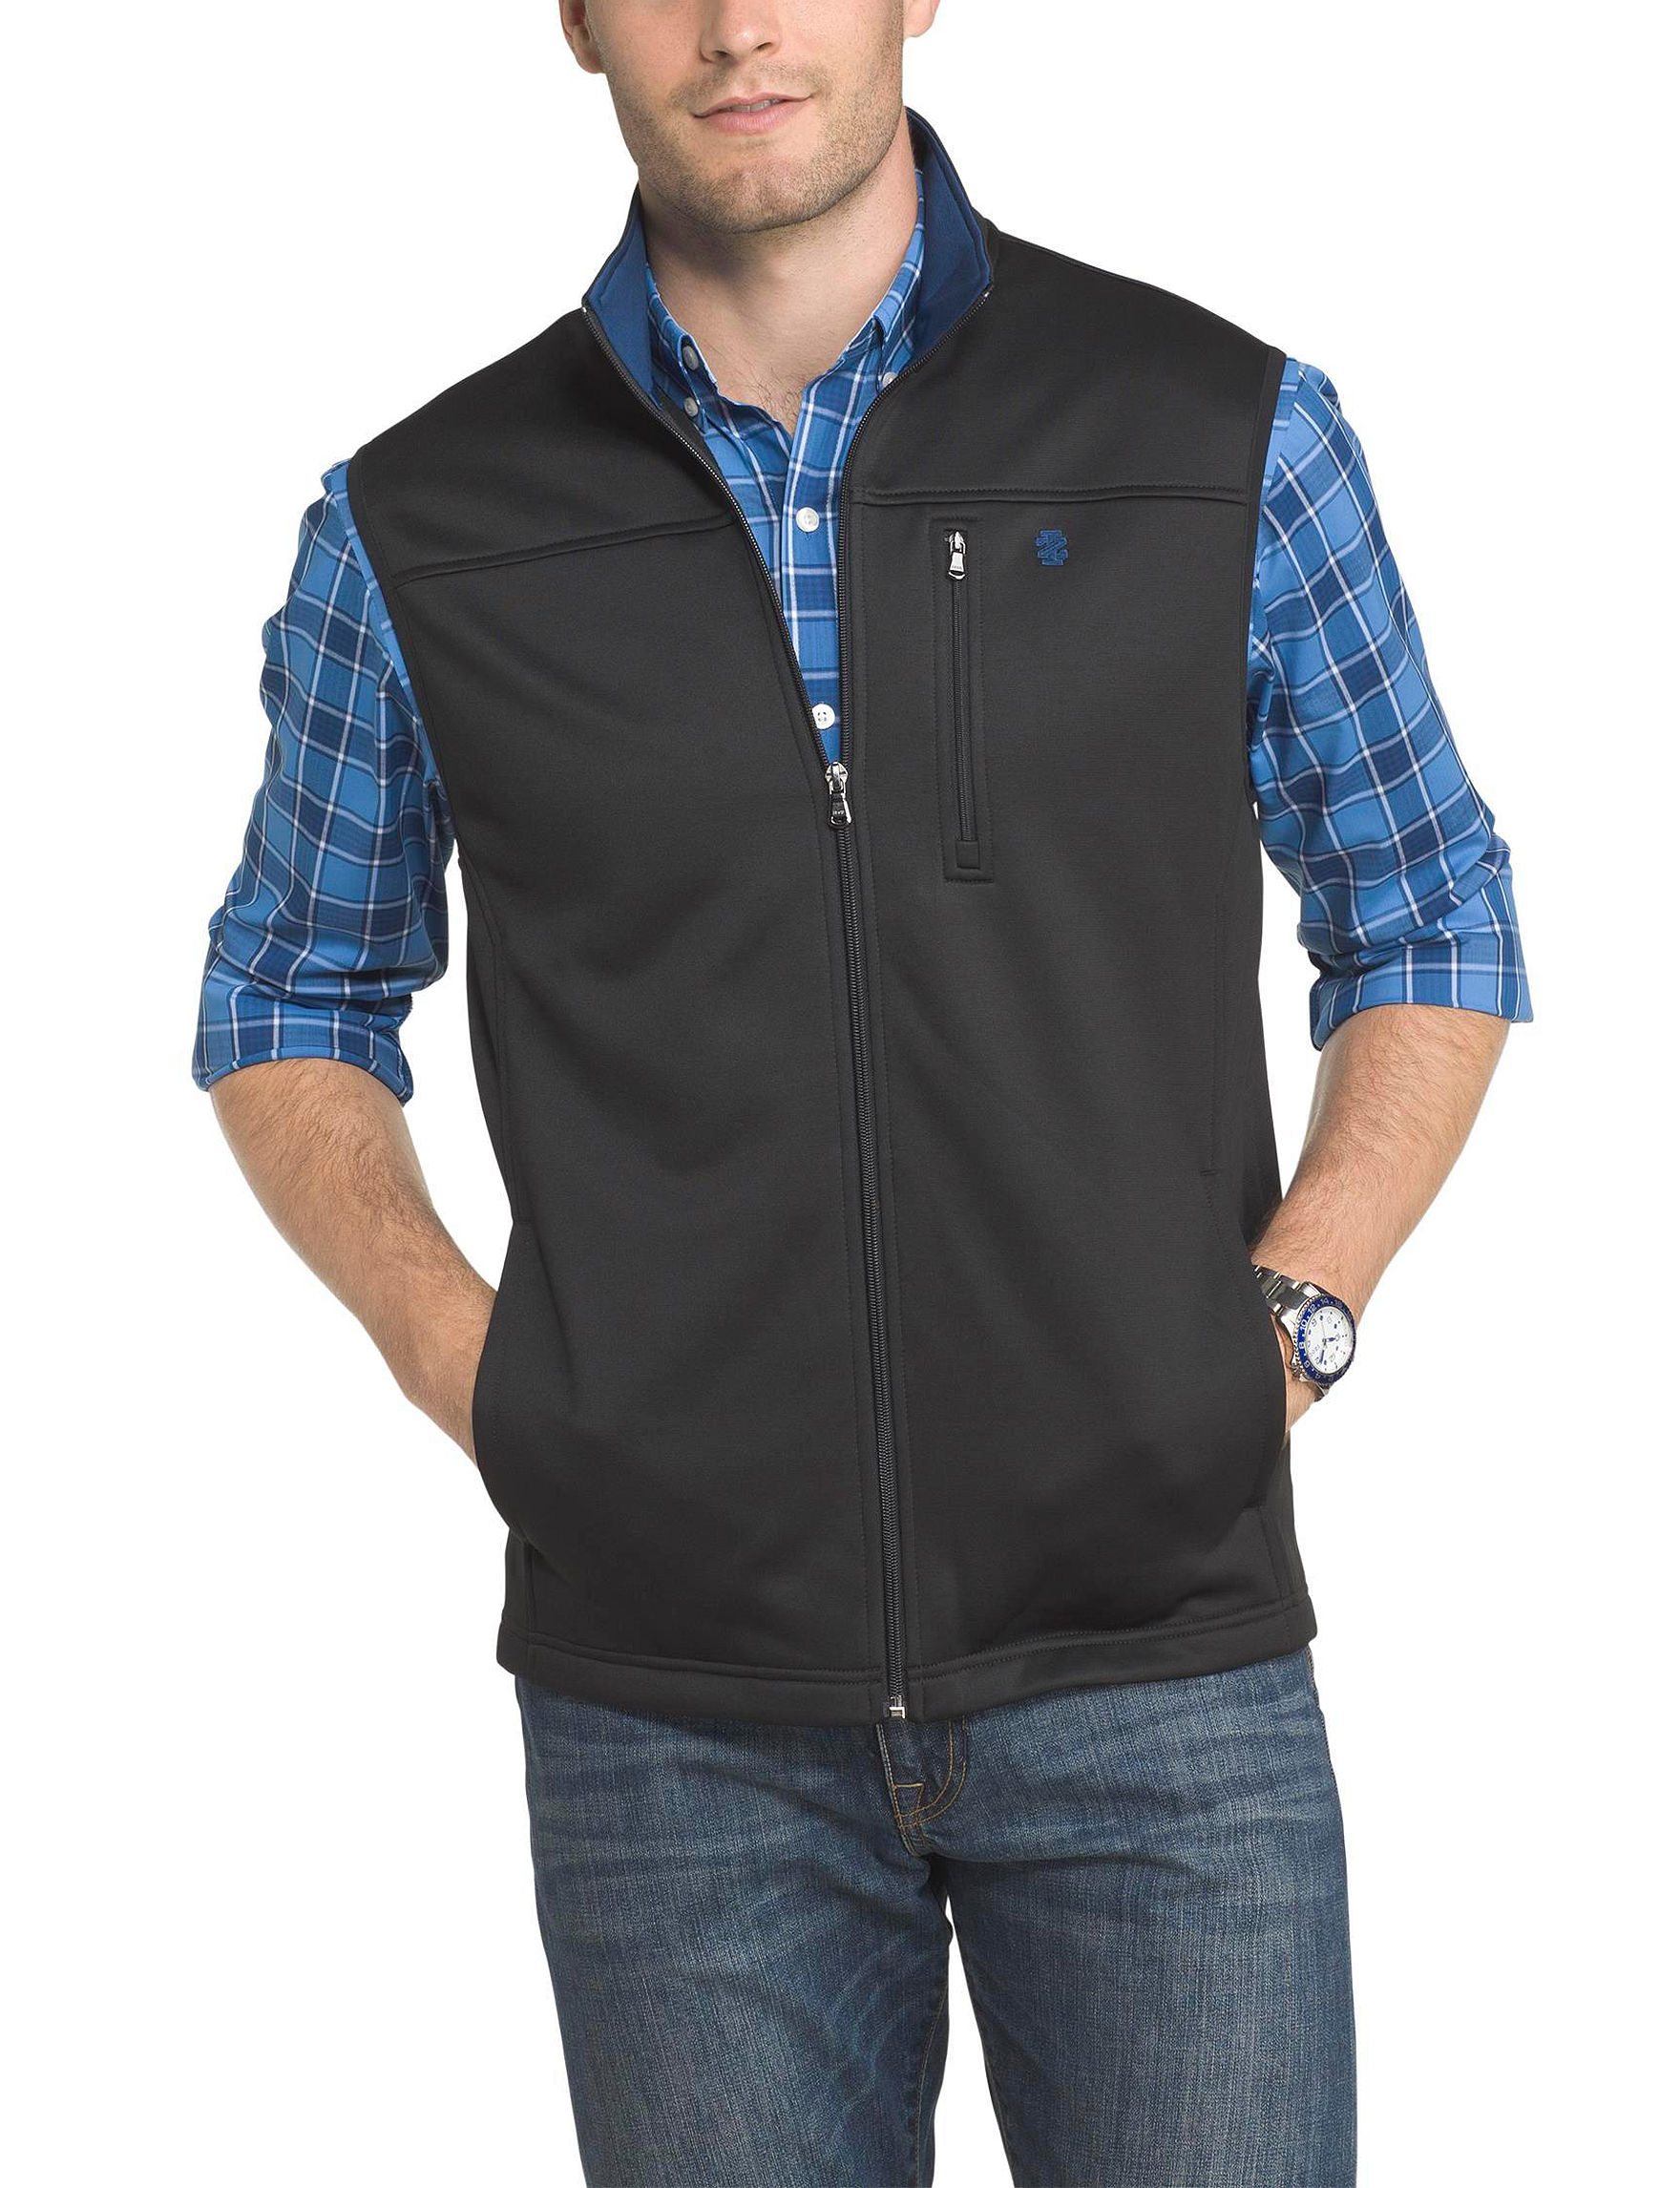 Izod Black Fleece & Soft Shell Jackets Vests